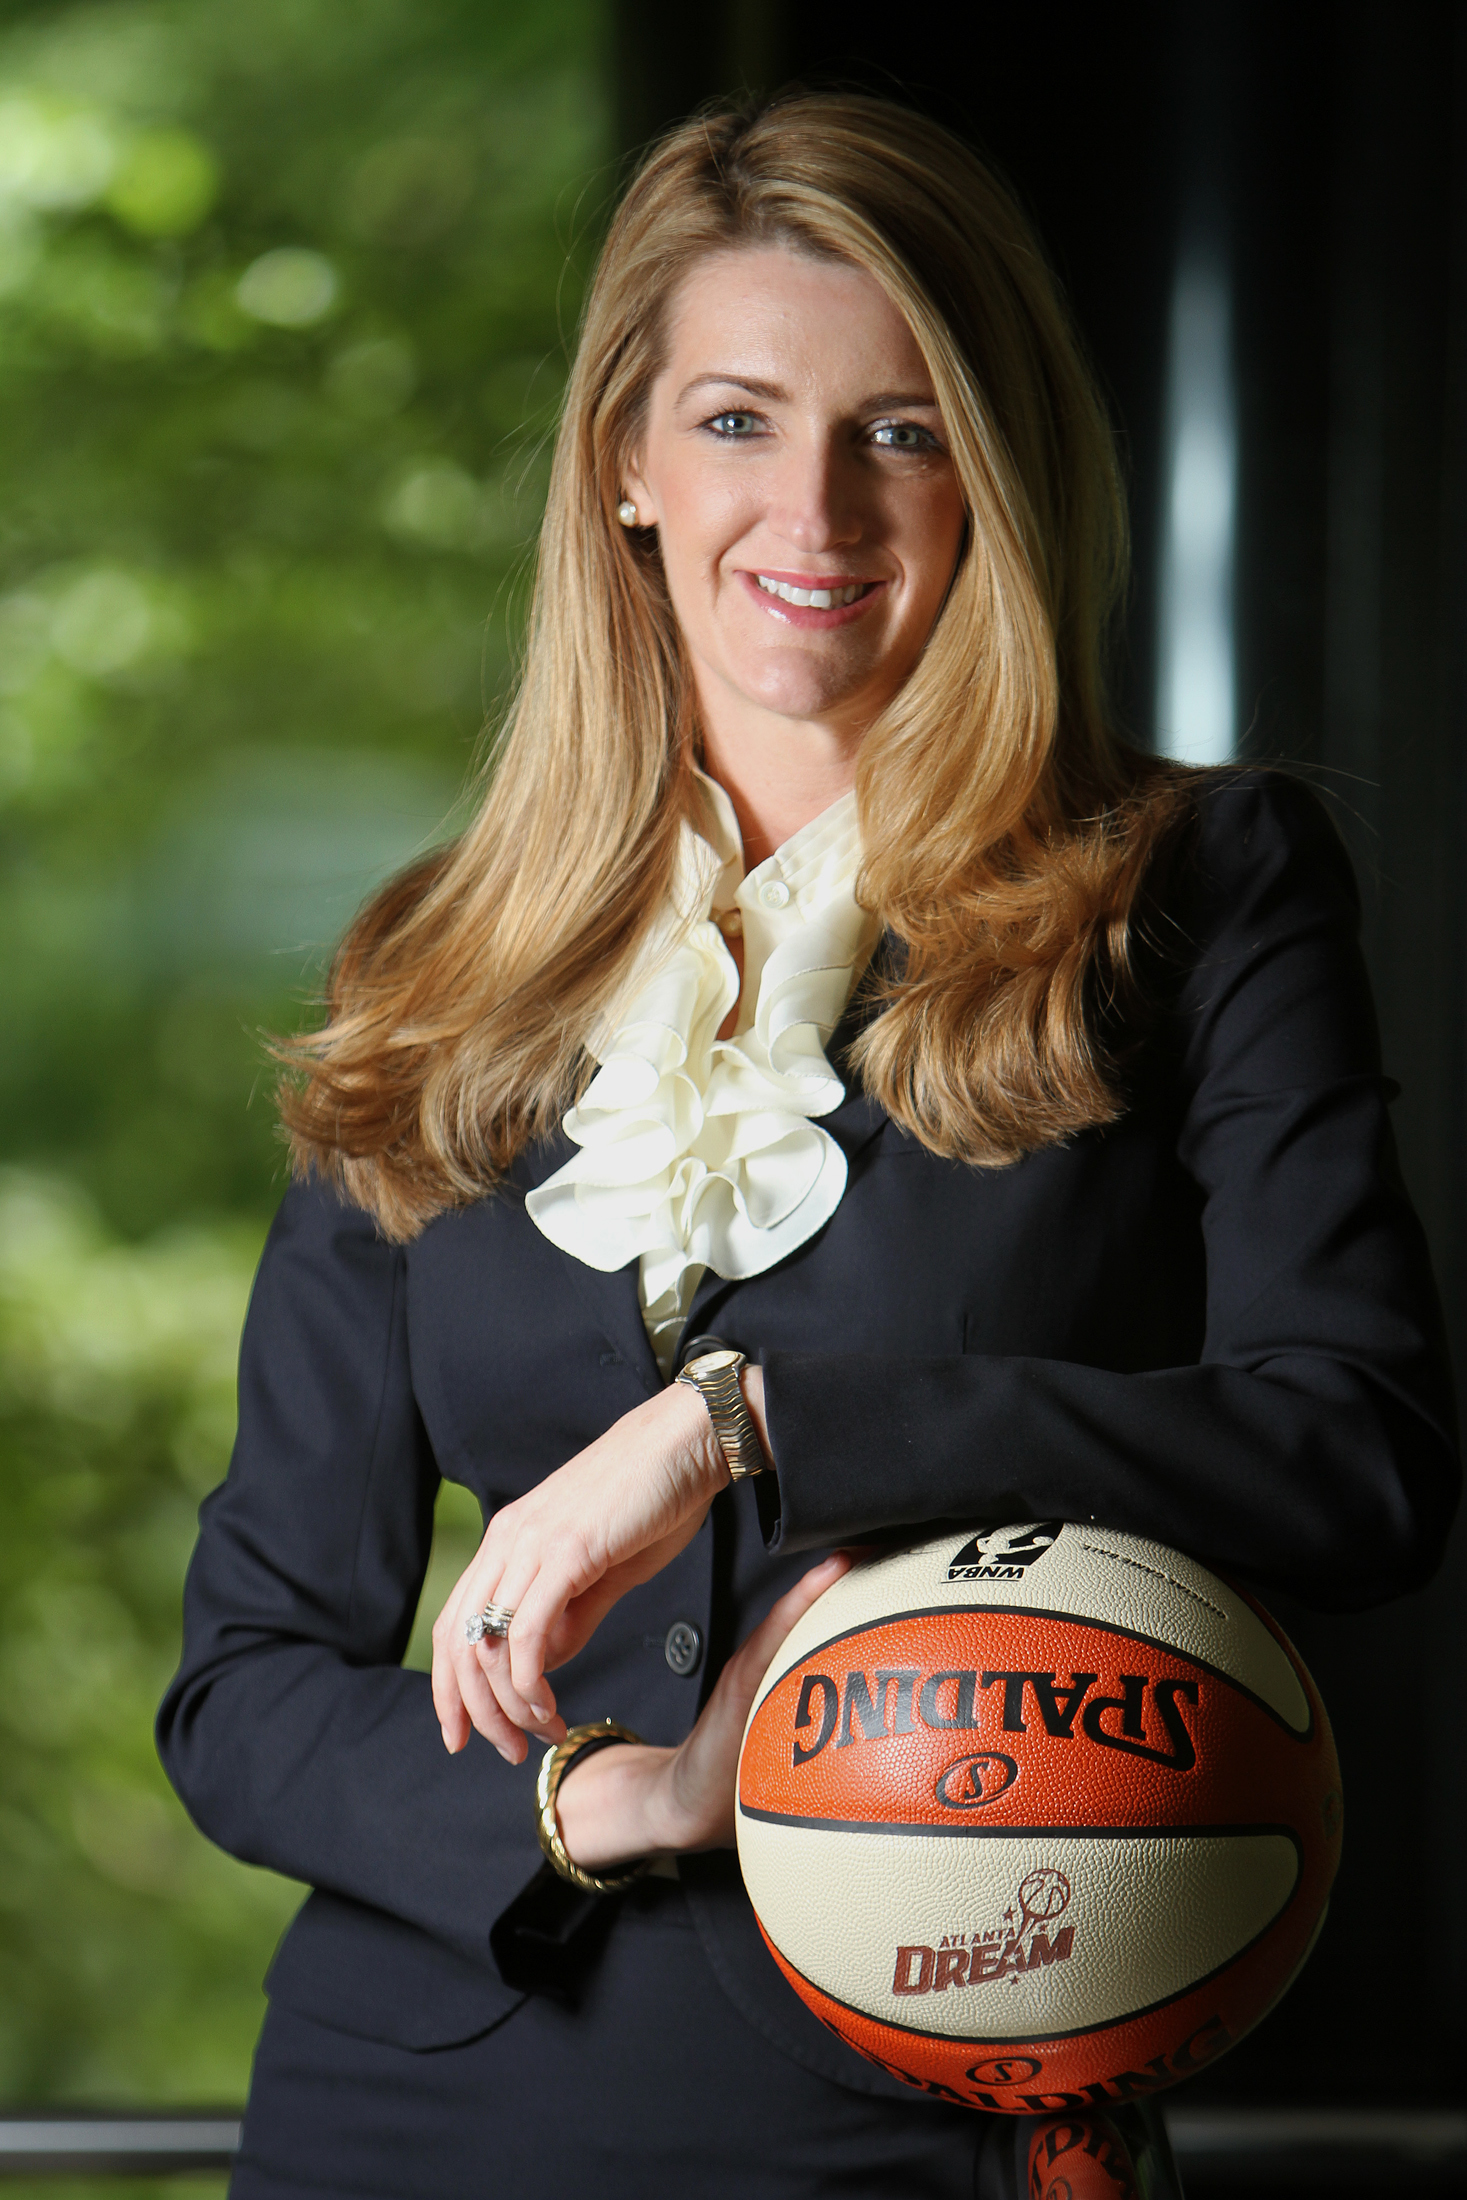 Kelly Loeffler pictured on May 24, 2011. She bought into the Atlanta Dream woman's basketball franchise partly to push players to see sports as paving the way to success all the way up the corporate ladder.